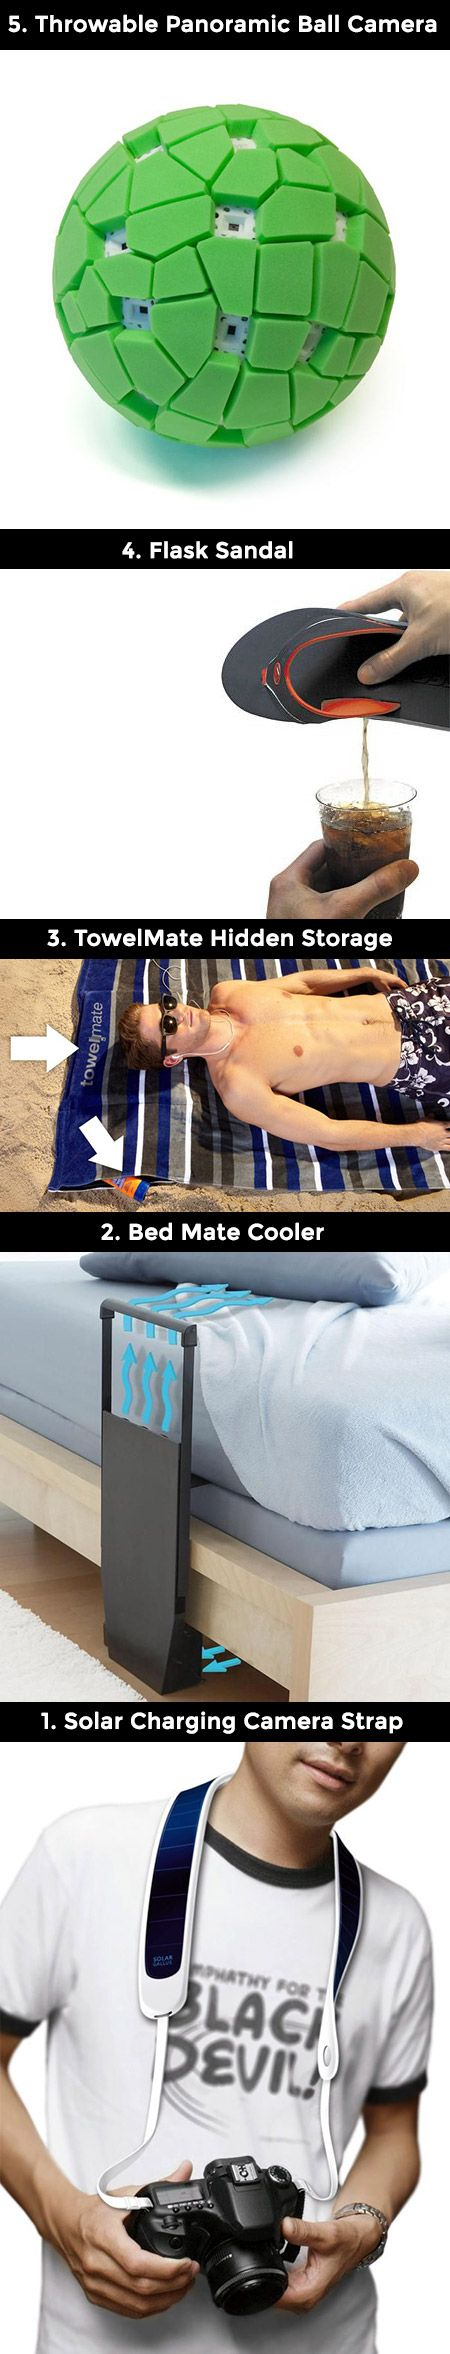 It is that time again, time for some cool and useful gadgets that are perfect for summer.